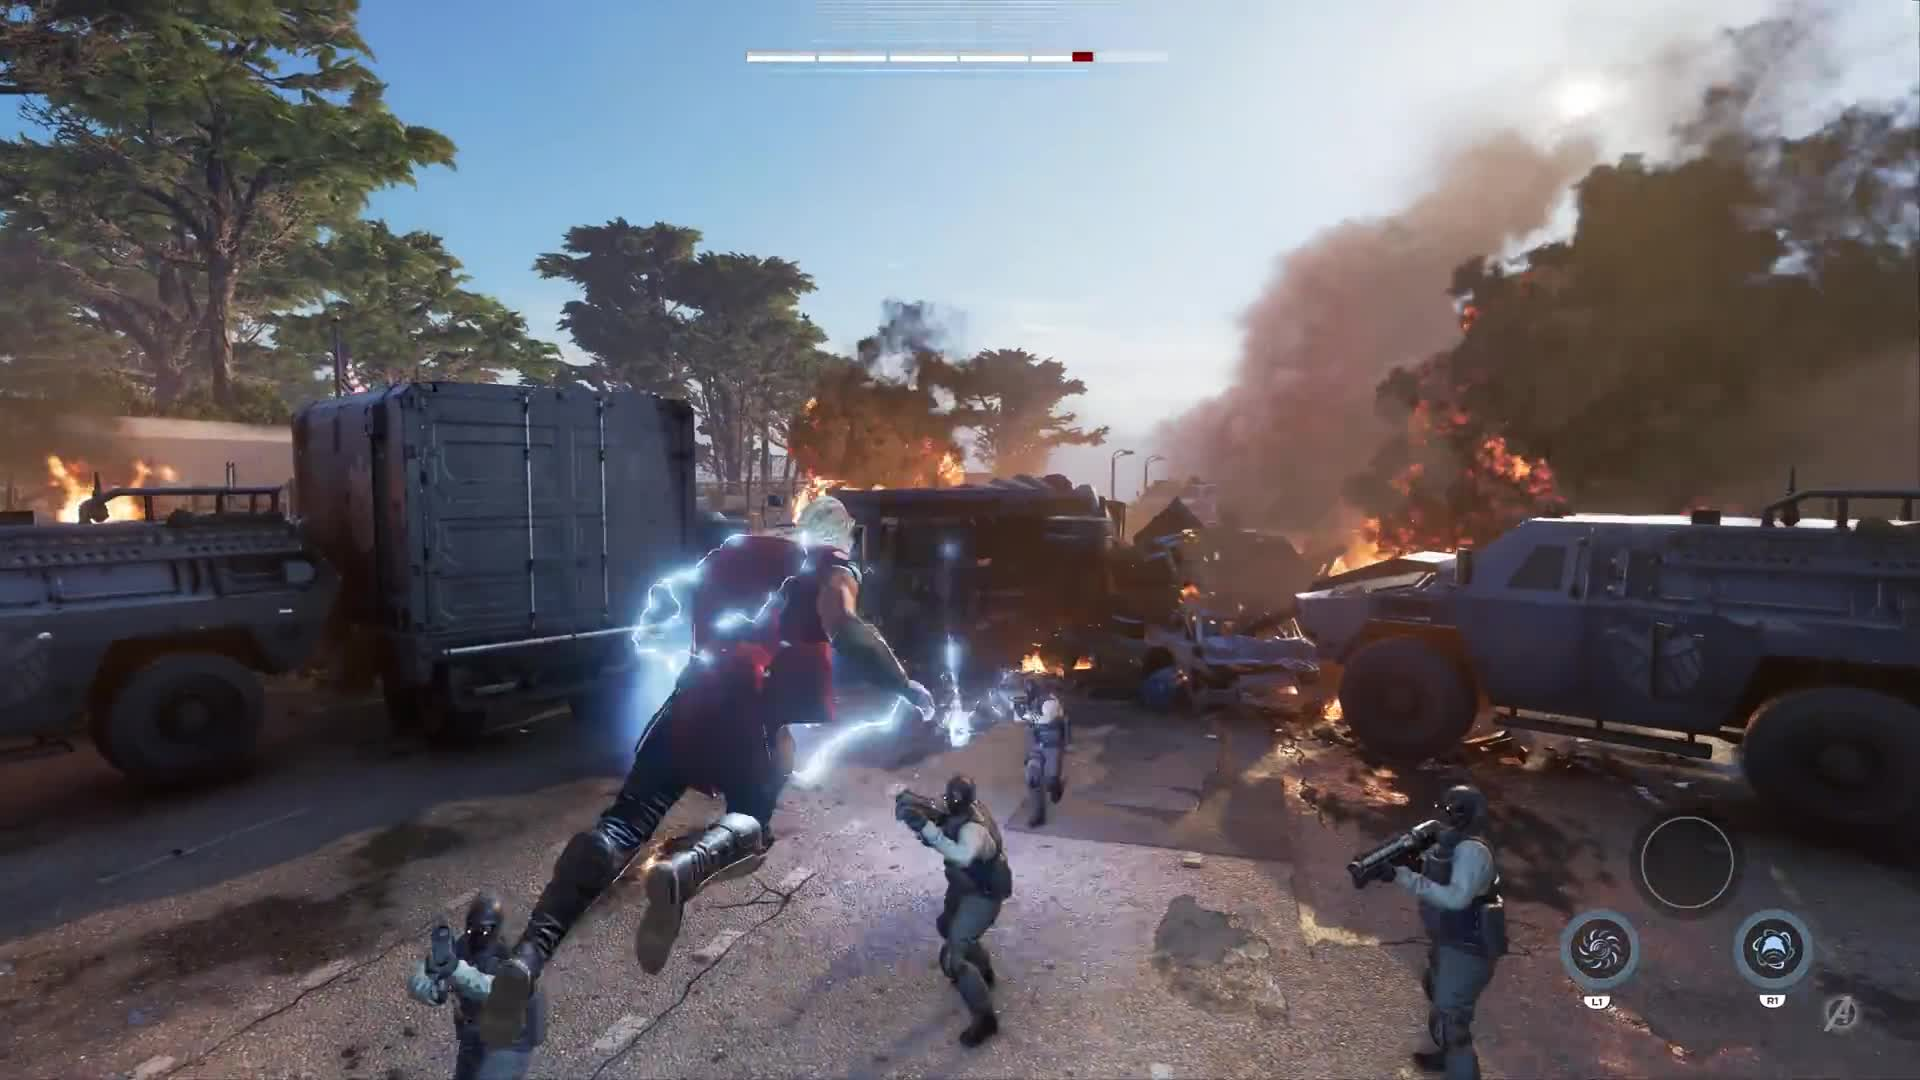 Marvel's Avengers: A-Day Prologue Gameplay Footage [HD] screen capture